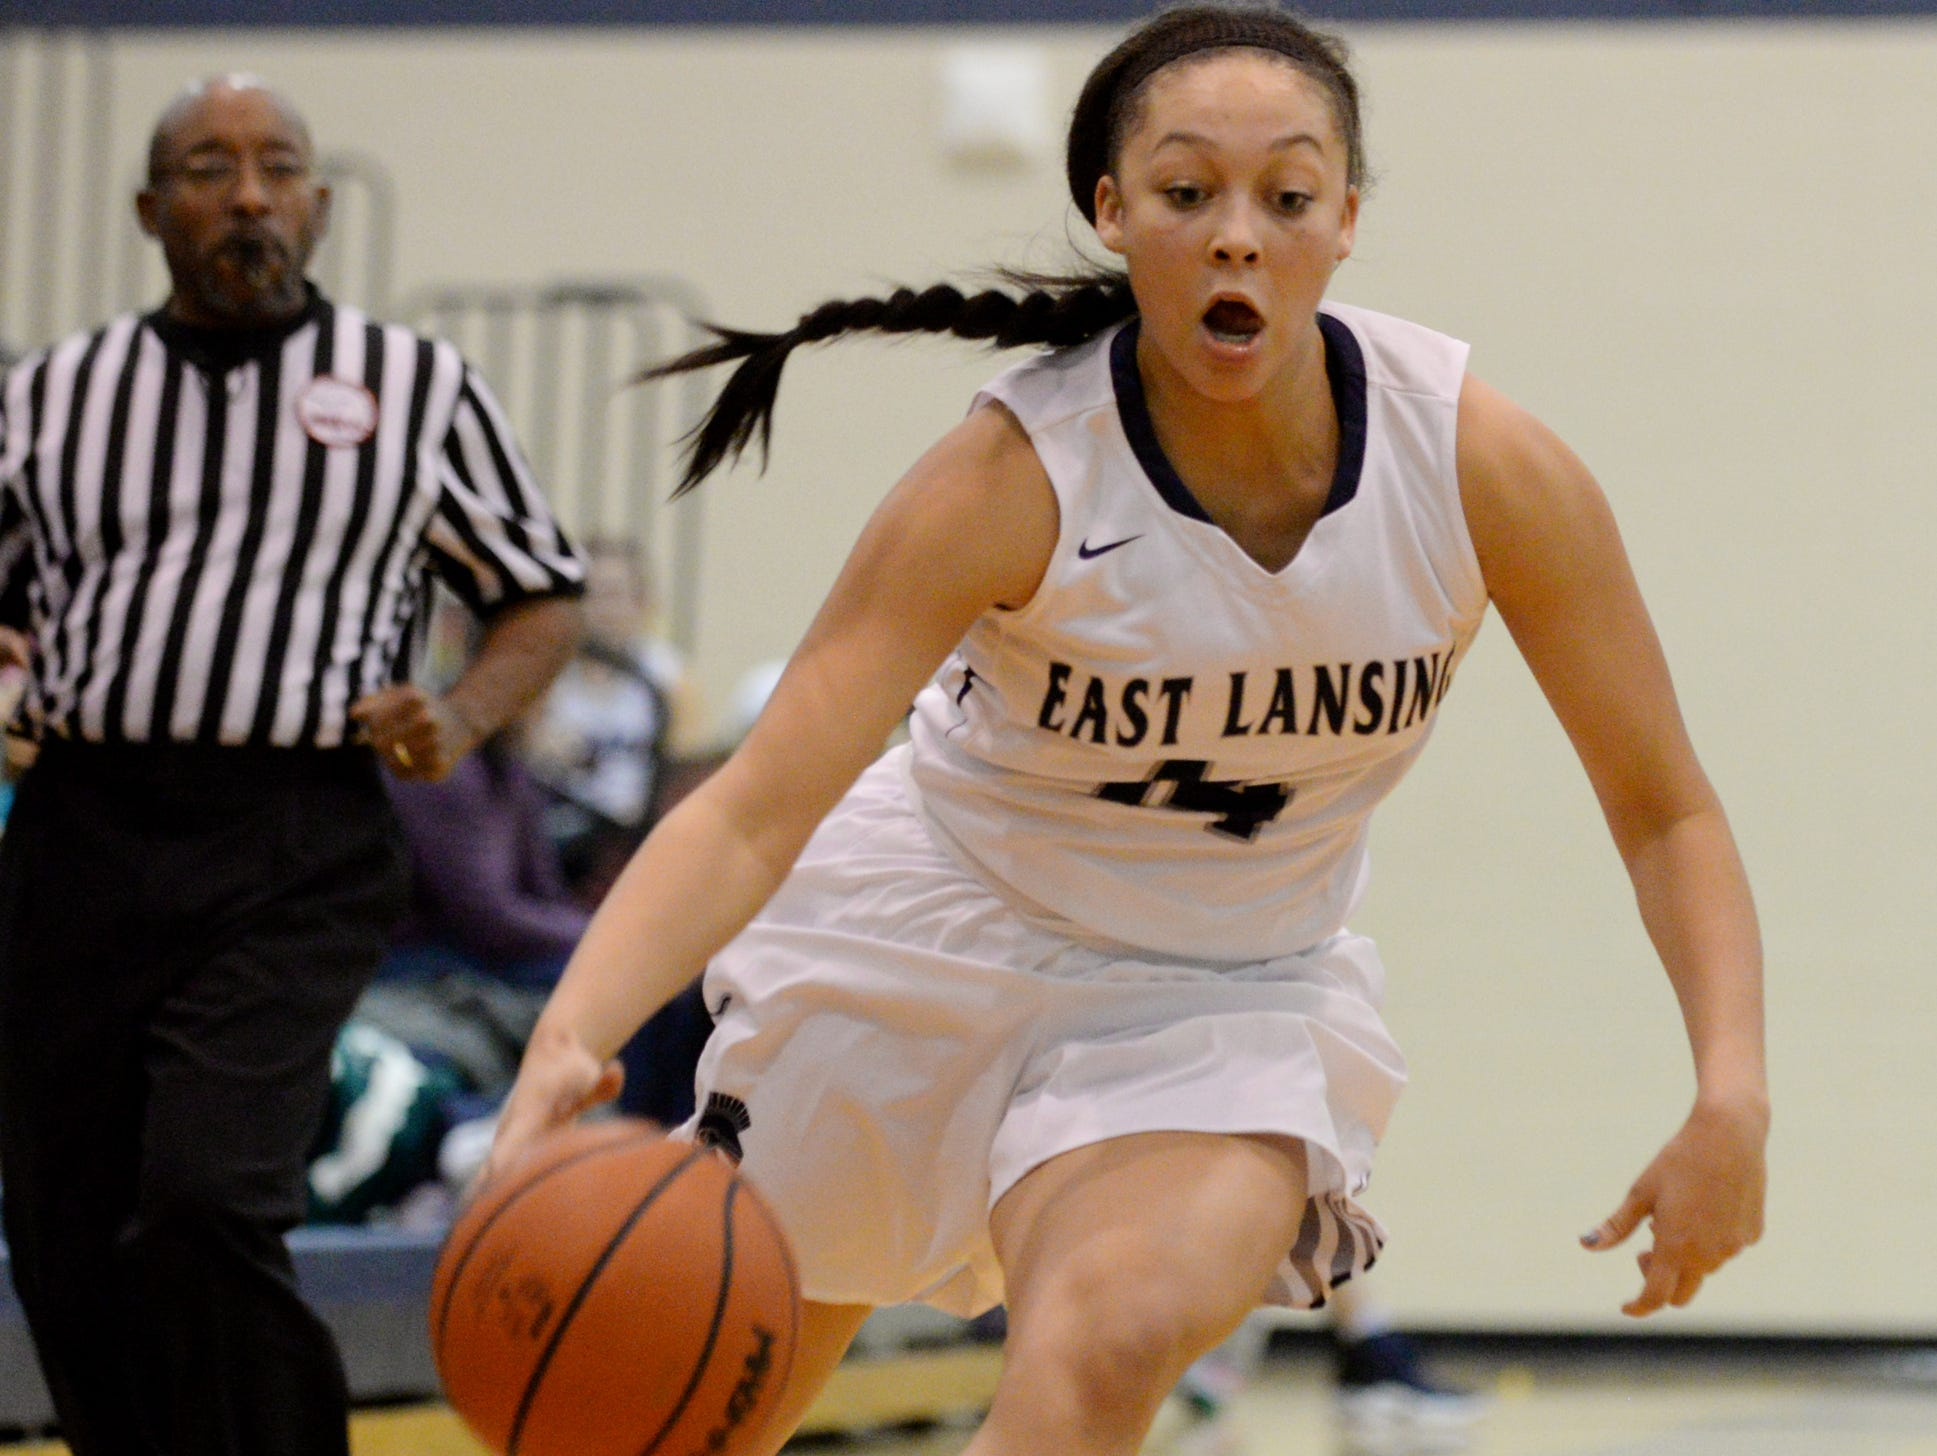 East Lansing's Aazhenii Nye runs the ball down the court during the game against Haslett on Tuesday, Dec. 13, 2016 at East Lansing High School. East Lansing won, 60-50.